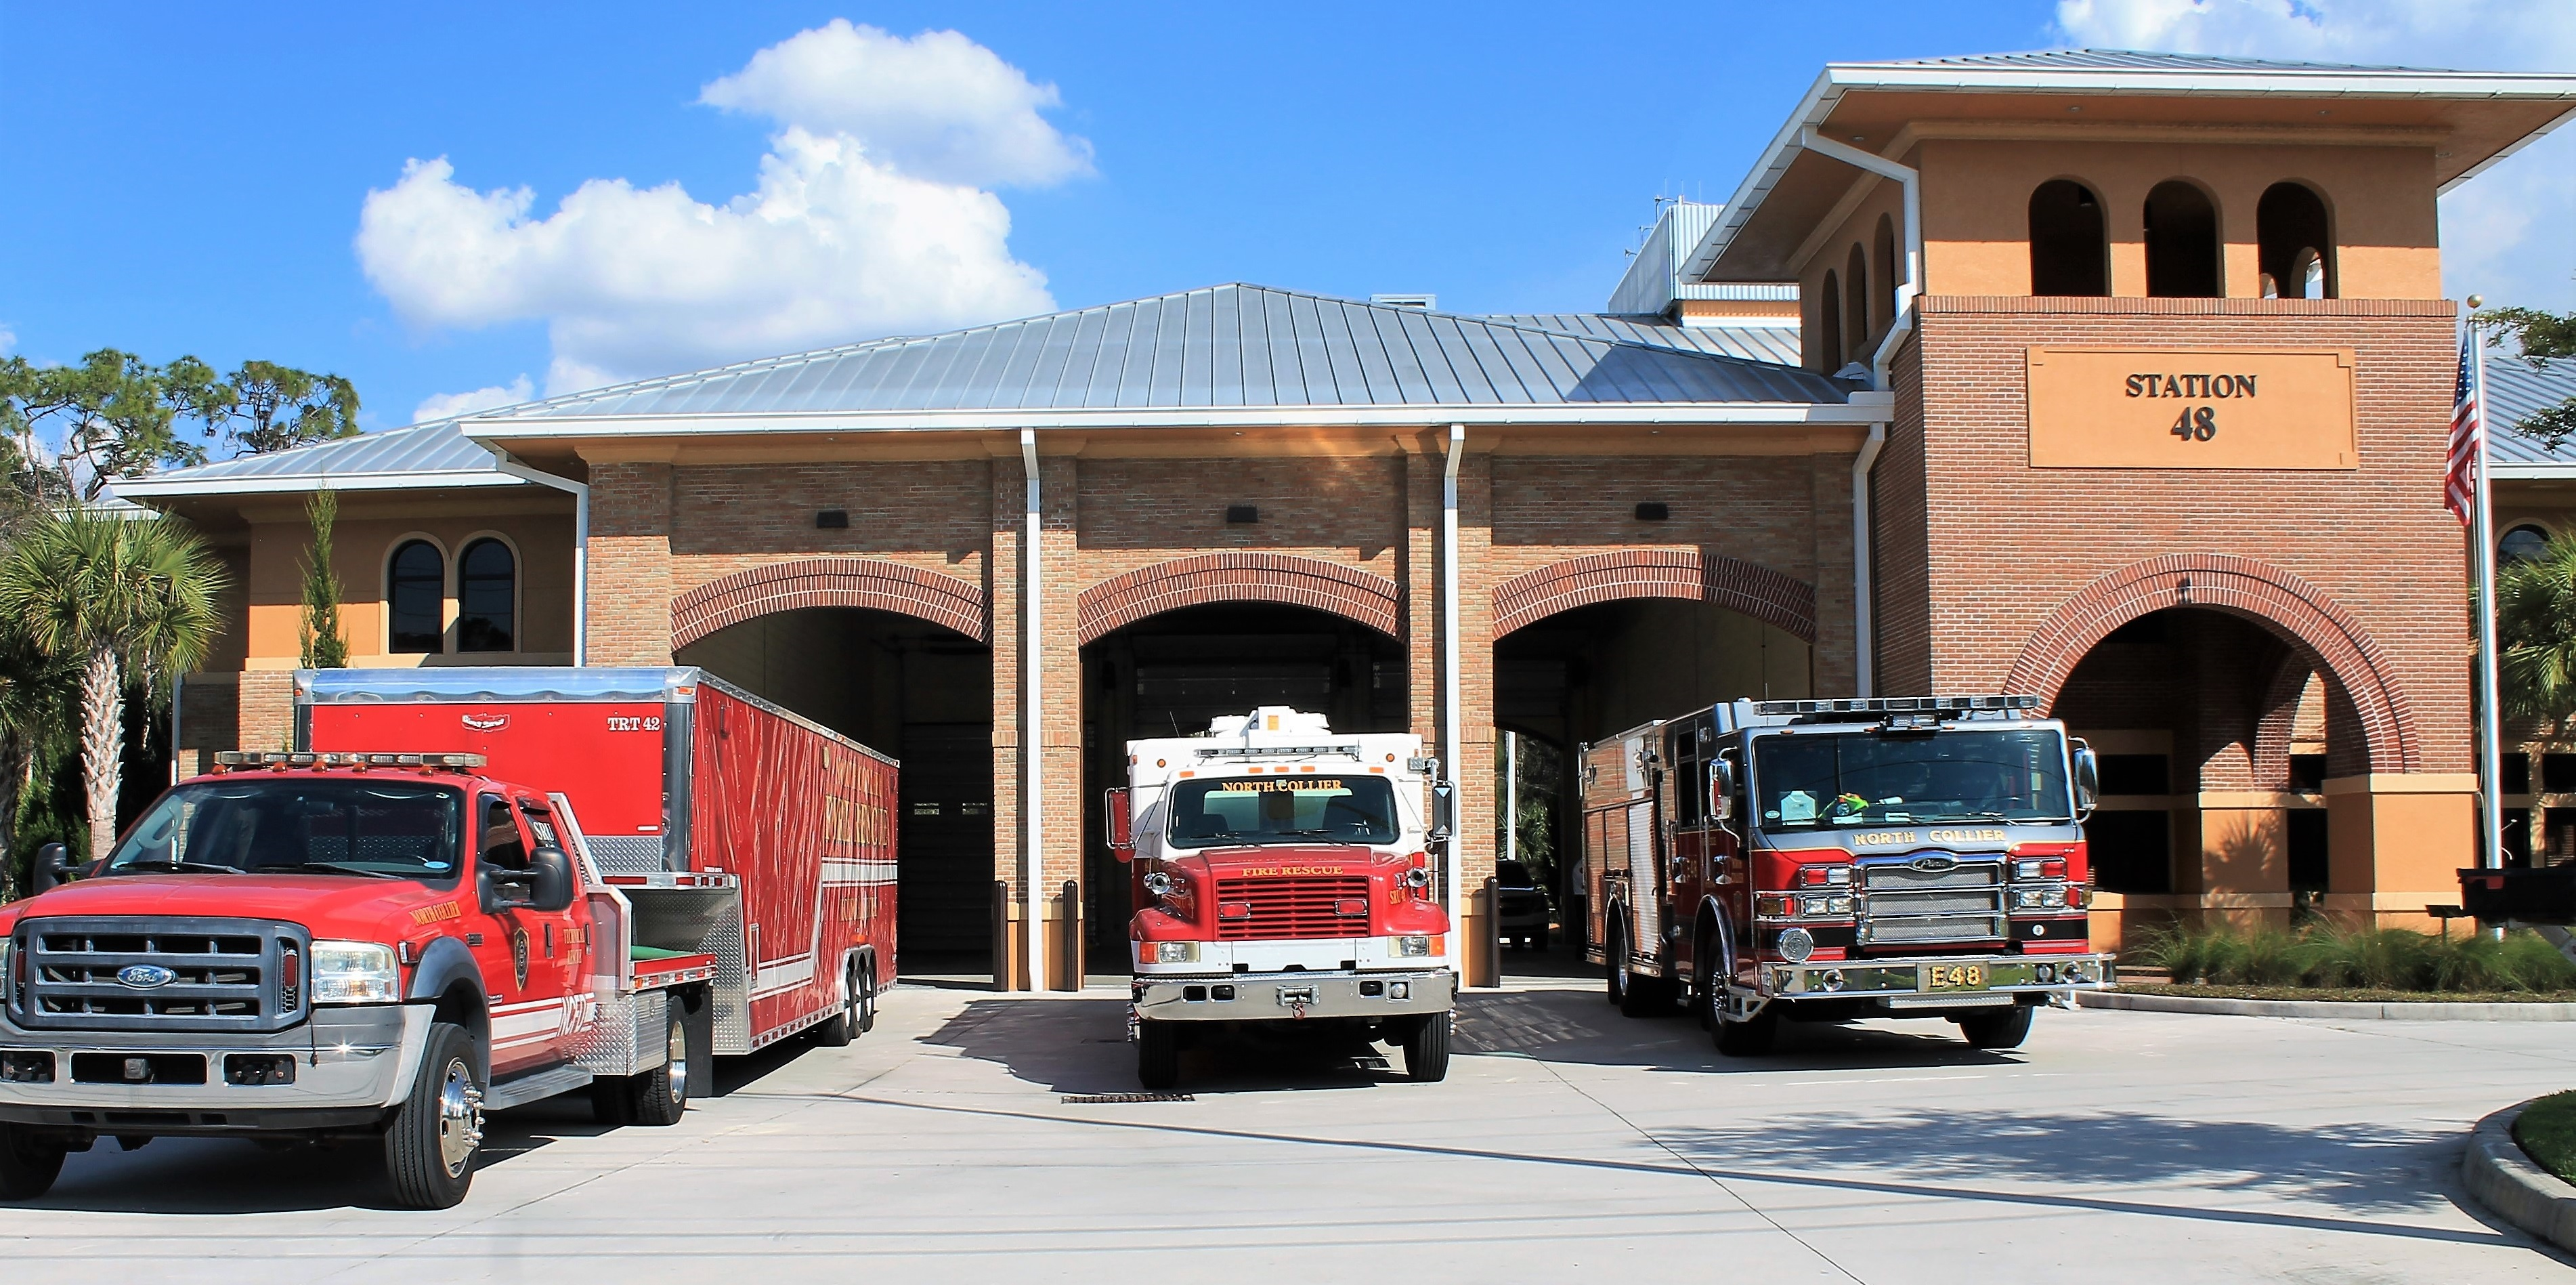 North Collier Fire & Rescue Station 45